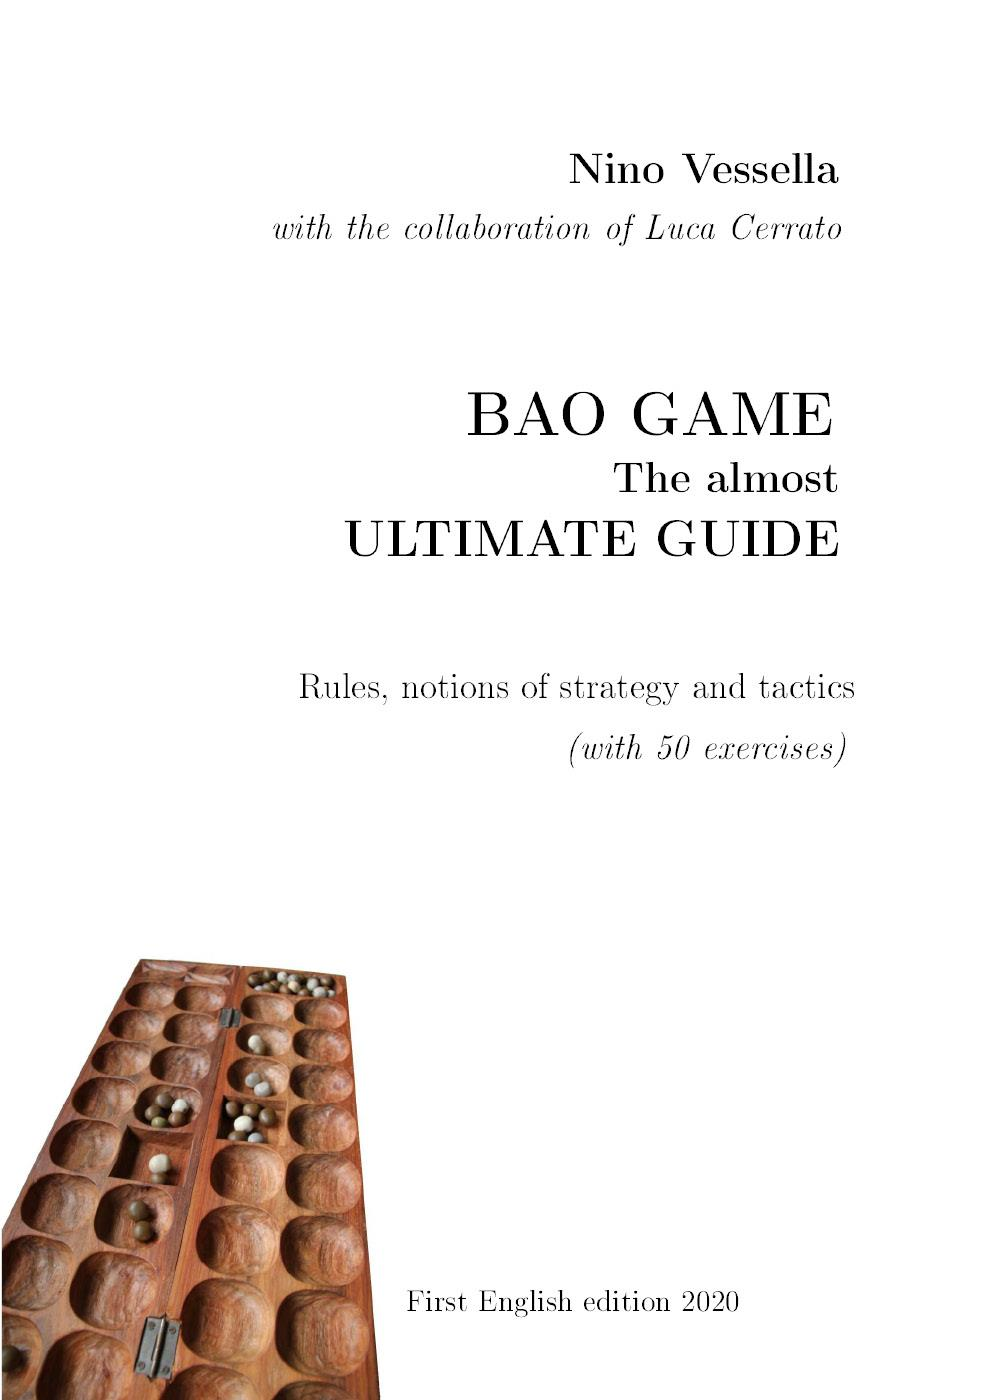 BAO GAME - The ultimate guide